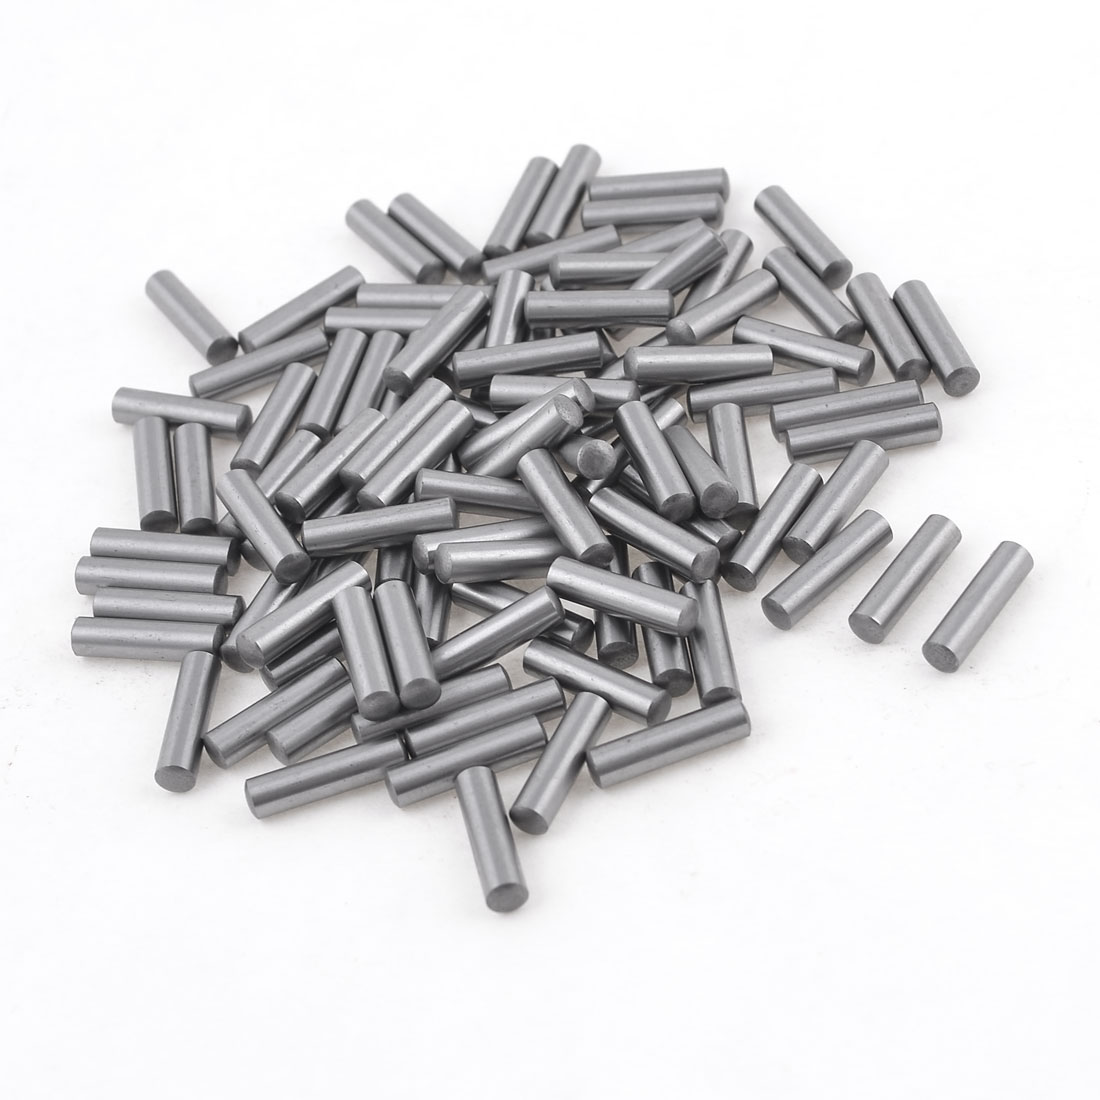 100 Pcs 3.85mm Diameter 15.8mm Length Cylinder Parallel Dowel Pins